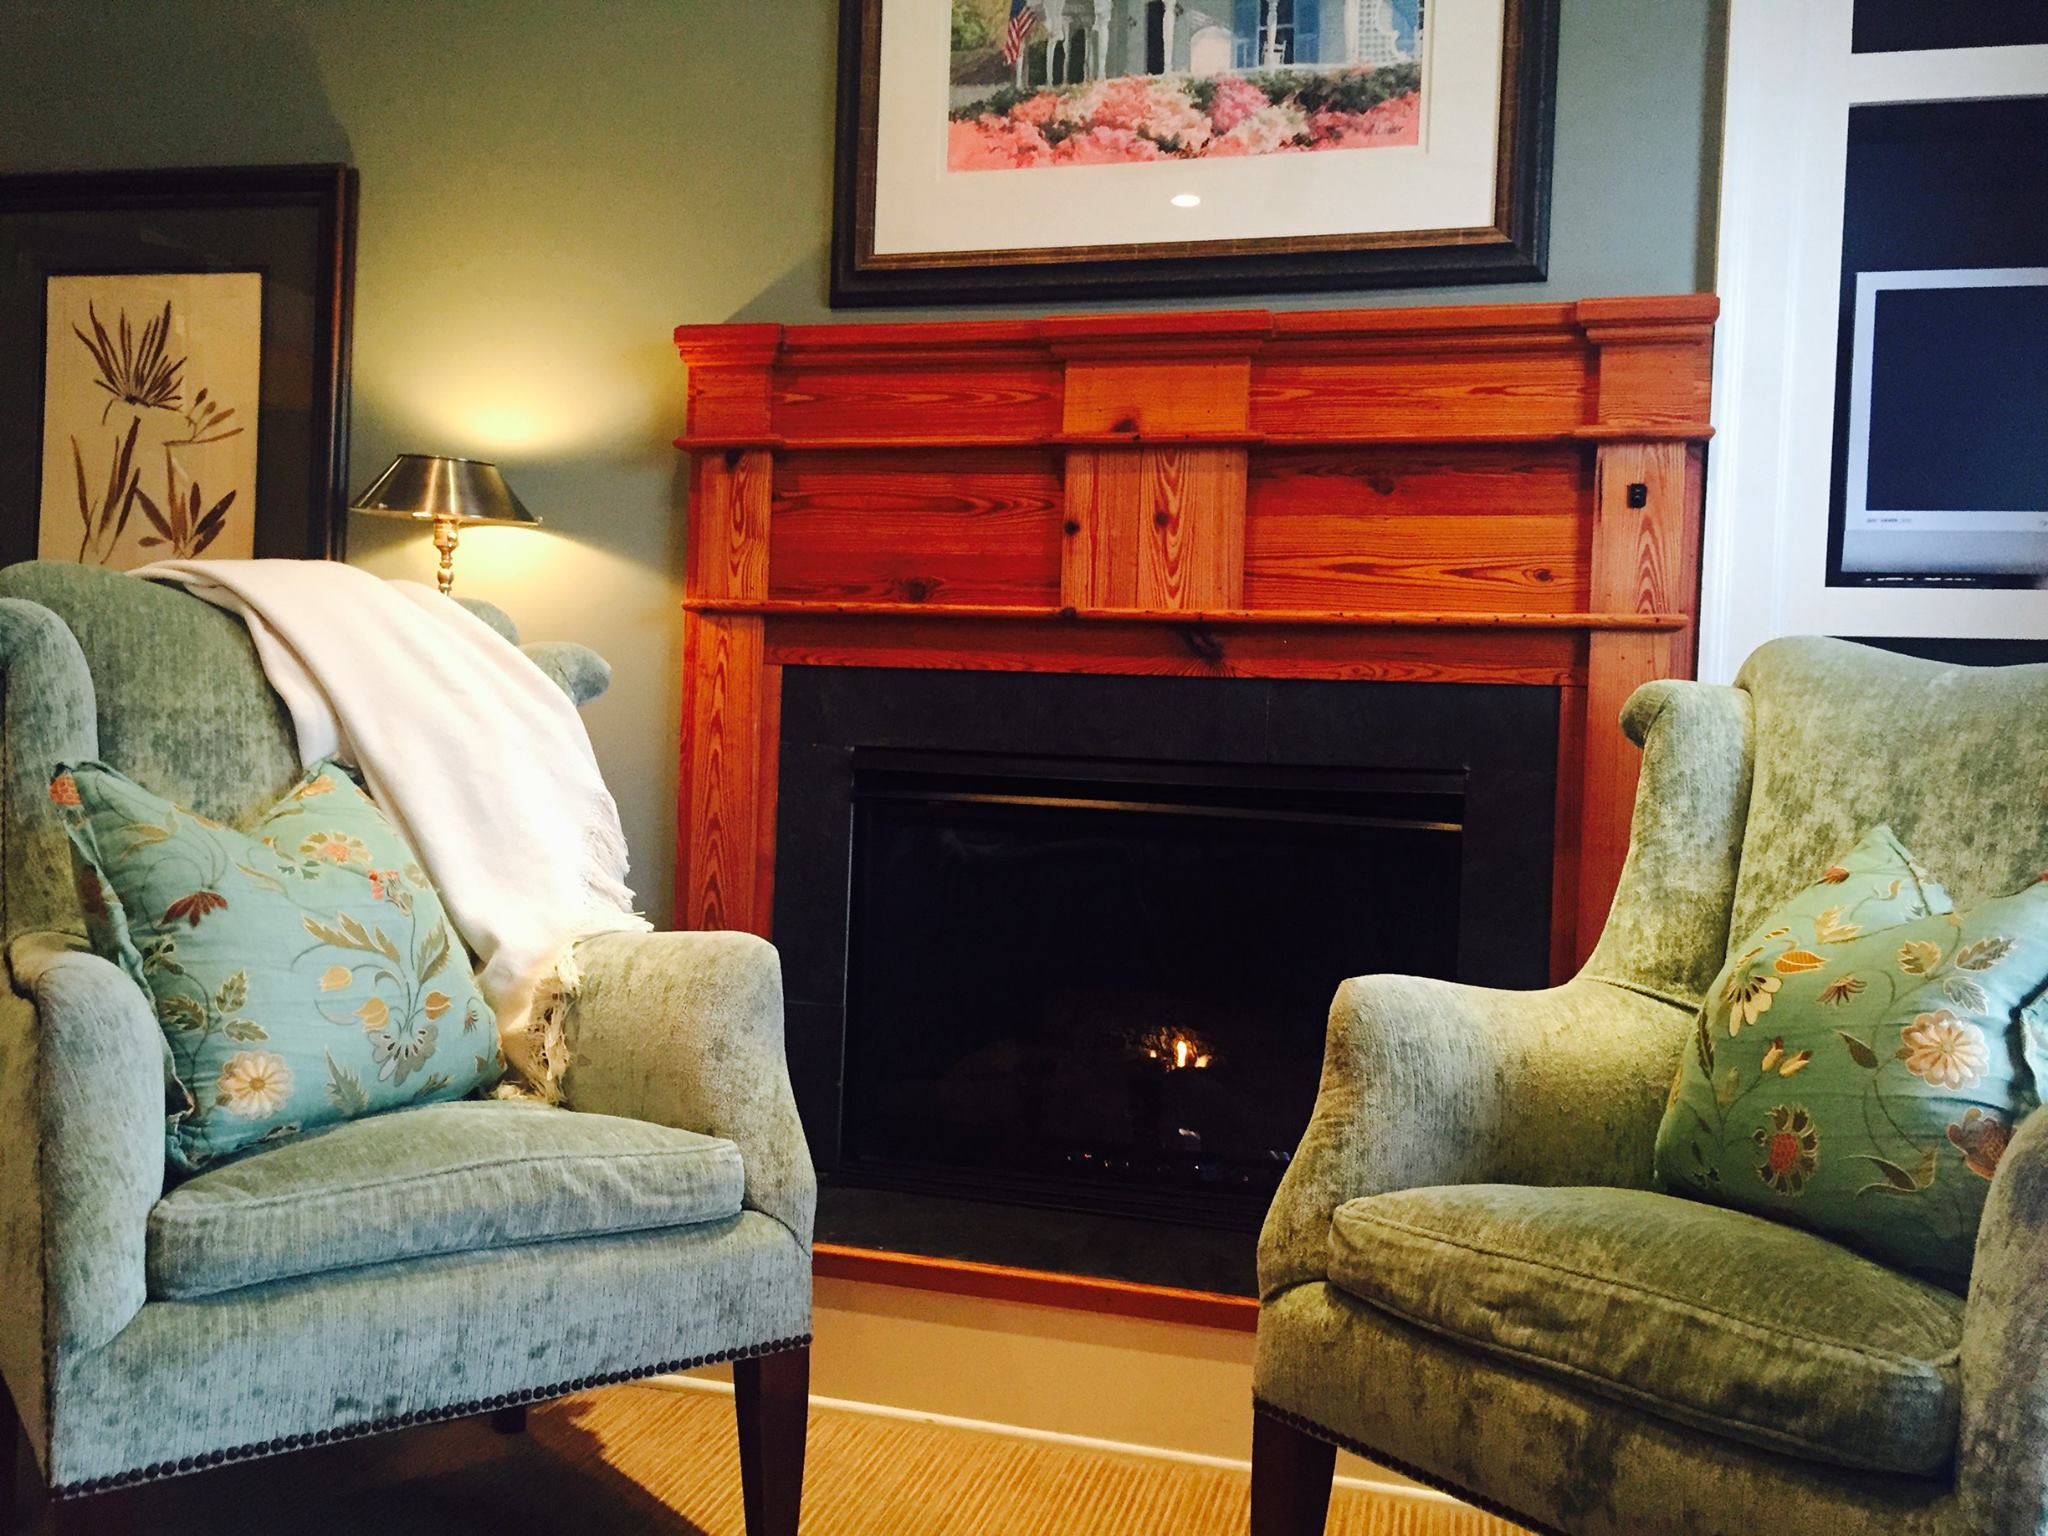 A cozy room at the James Madison Inn